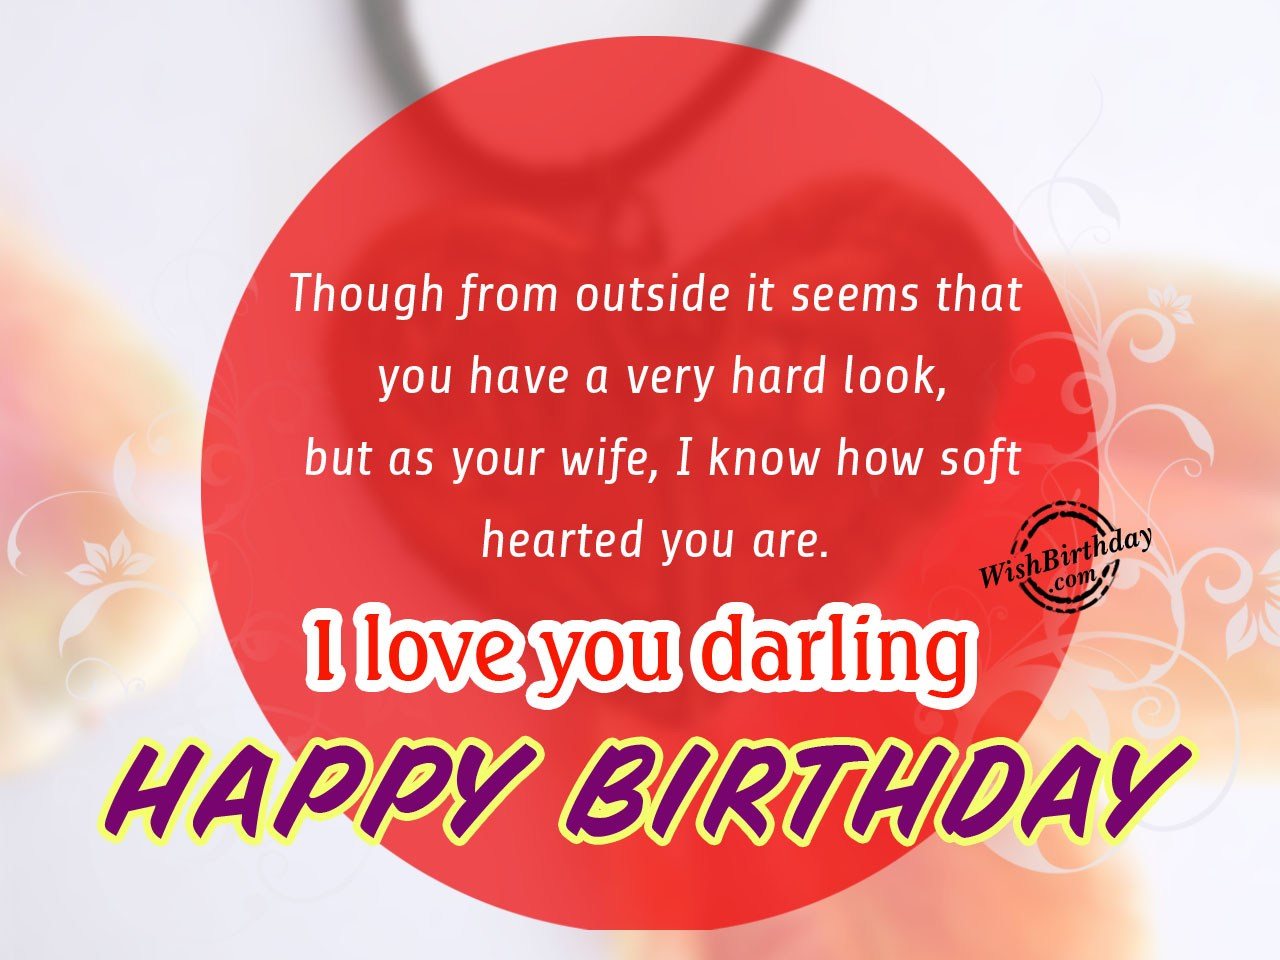 birthday wishes for husband greeting cards ; Though-from-outside-it-seems-that